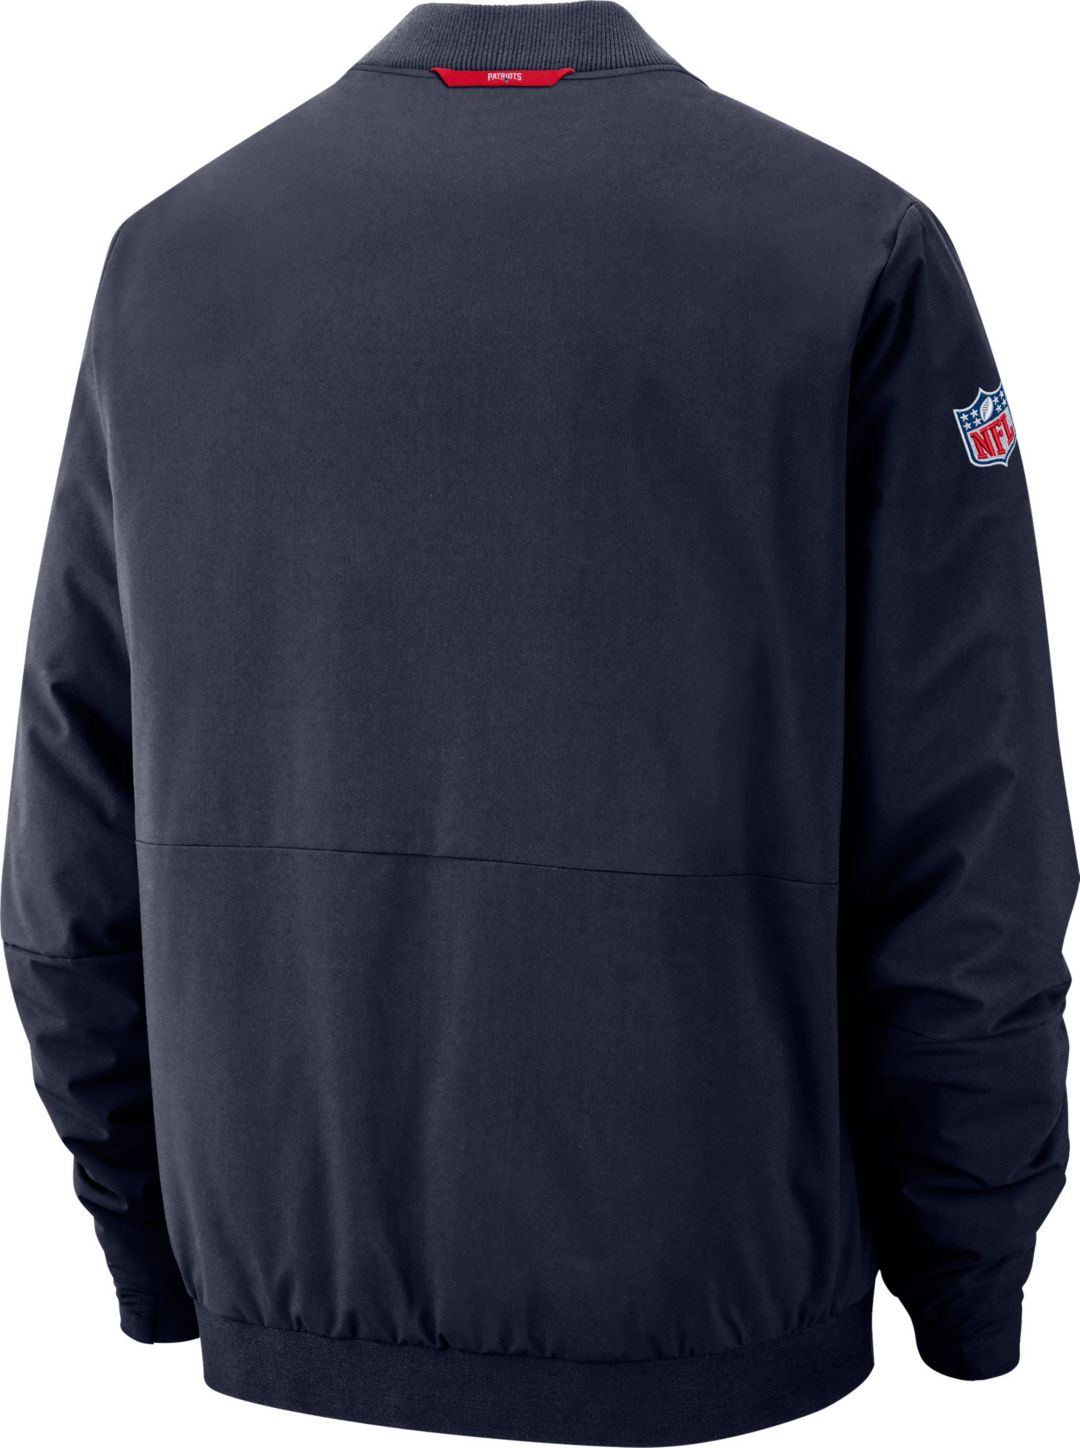 8915186a658 Nike Men's New England Patriots Sideline Shield Navy Bomber Jacket ...